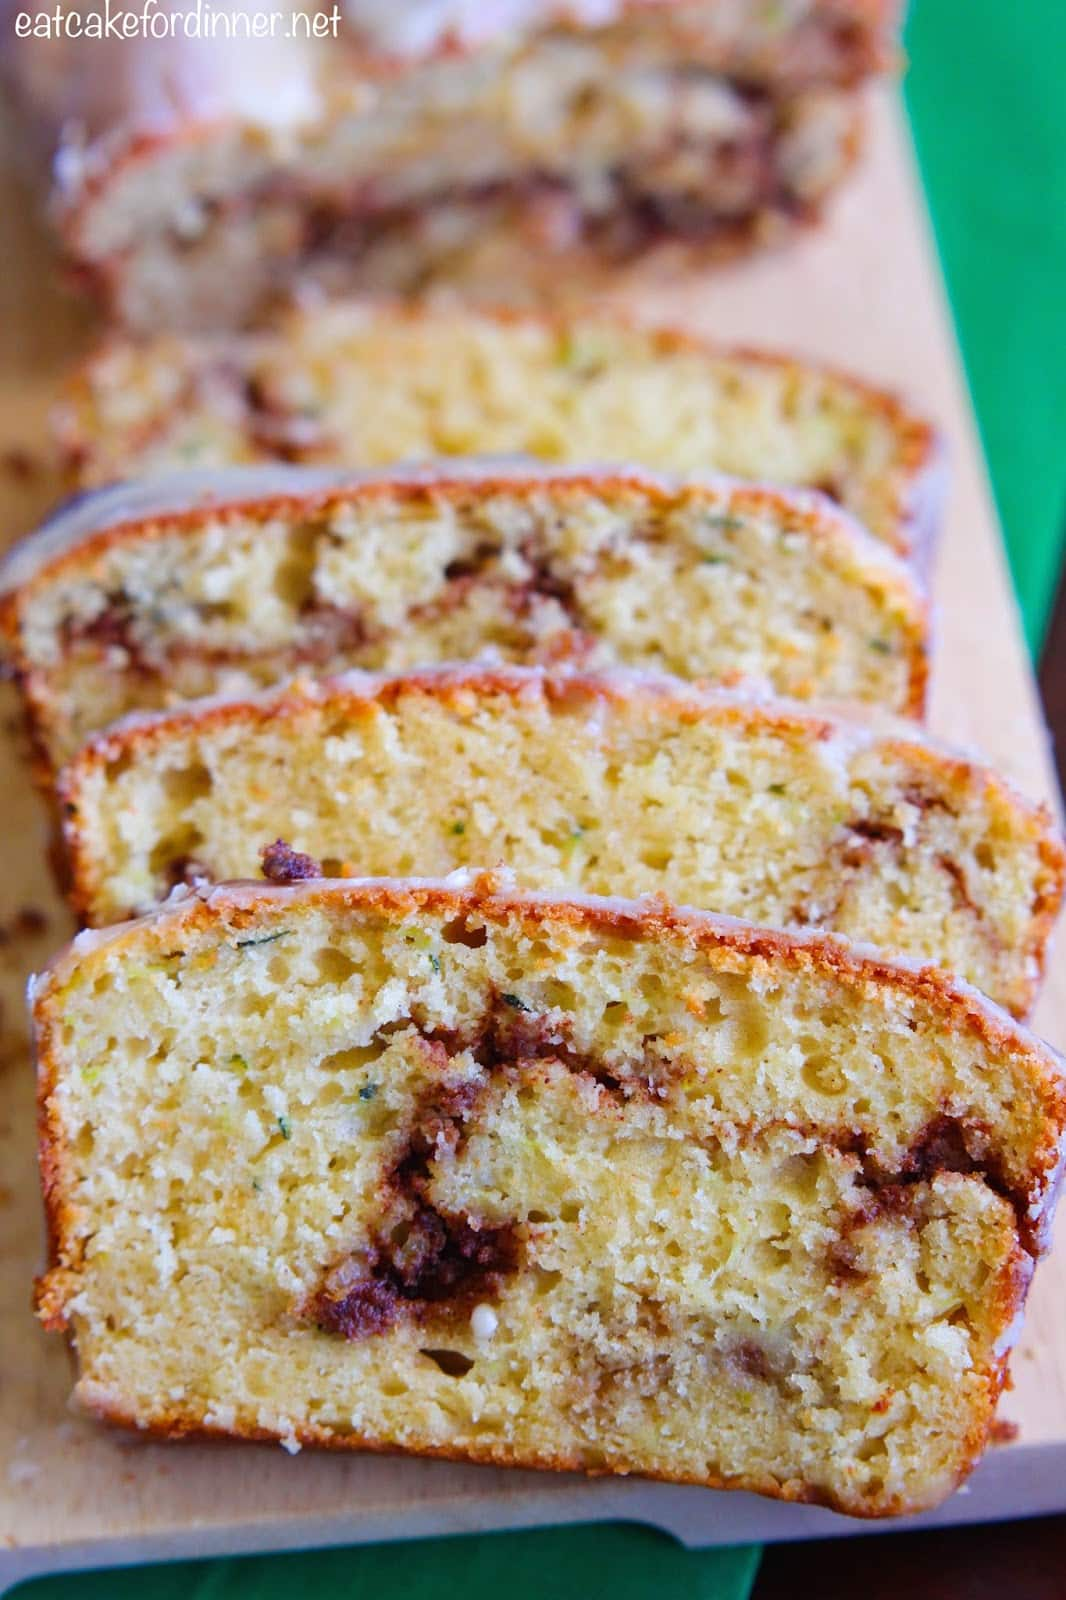 18 Zucchini Bread Recipes Everyone Will Love: Cinnamon Roll Zucchini Bread